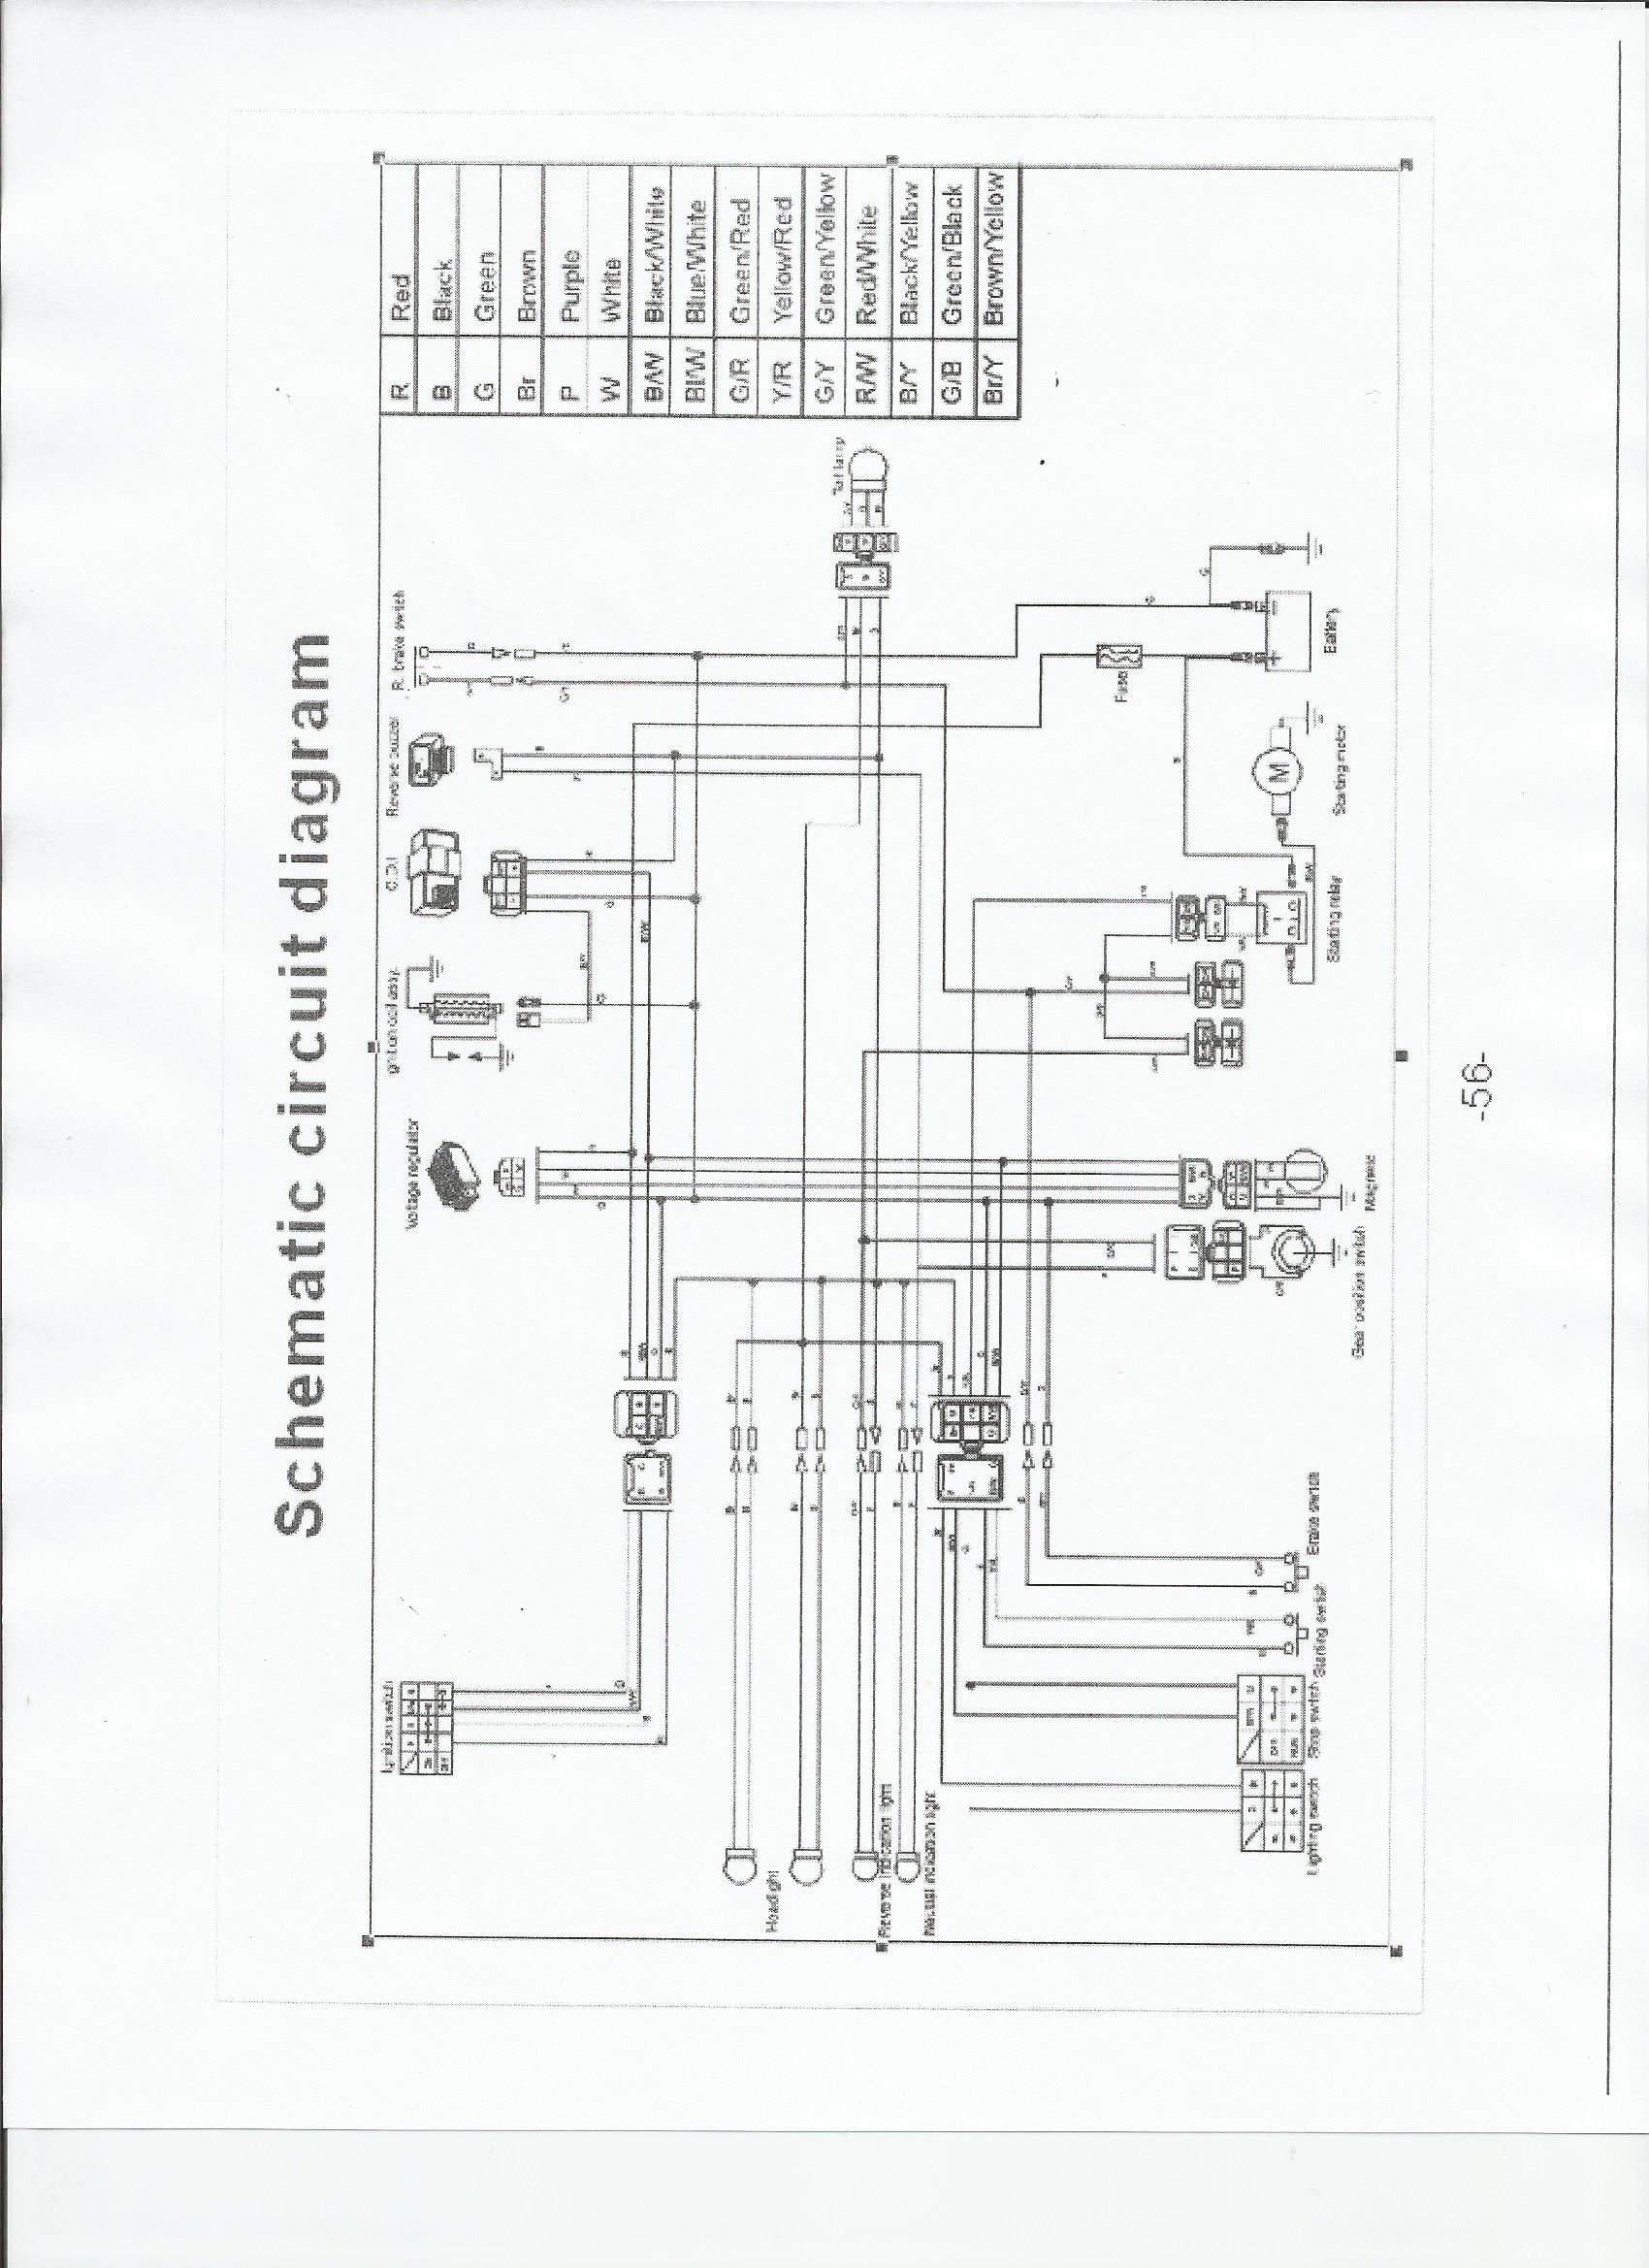 tao tao wiring schematic chinese 4 wheeler wiring diagram chinese atv cdi diagram \u2022 wiring  at n-0.co